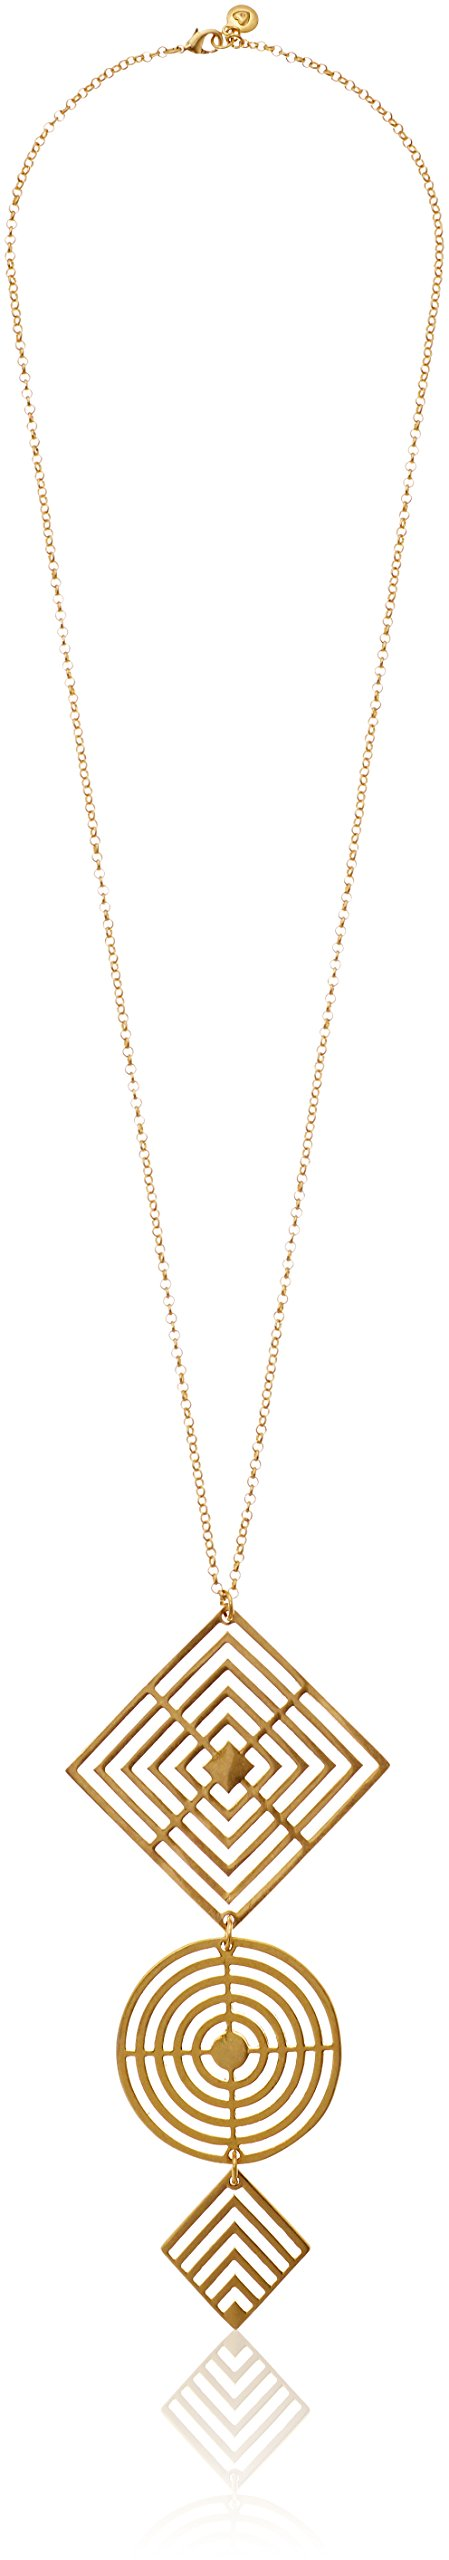 Dear Drew by Drew Barrymore Harlem Pendant Enhancer